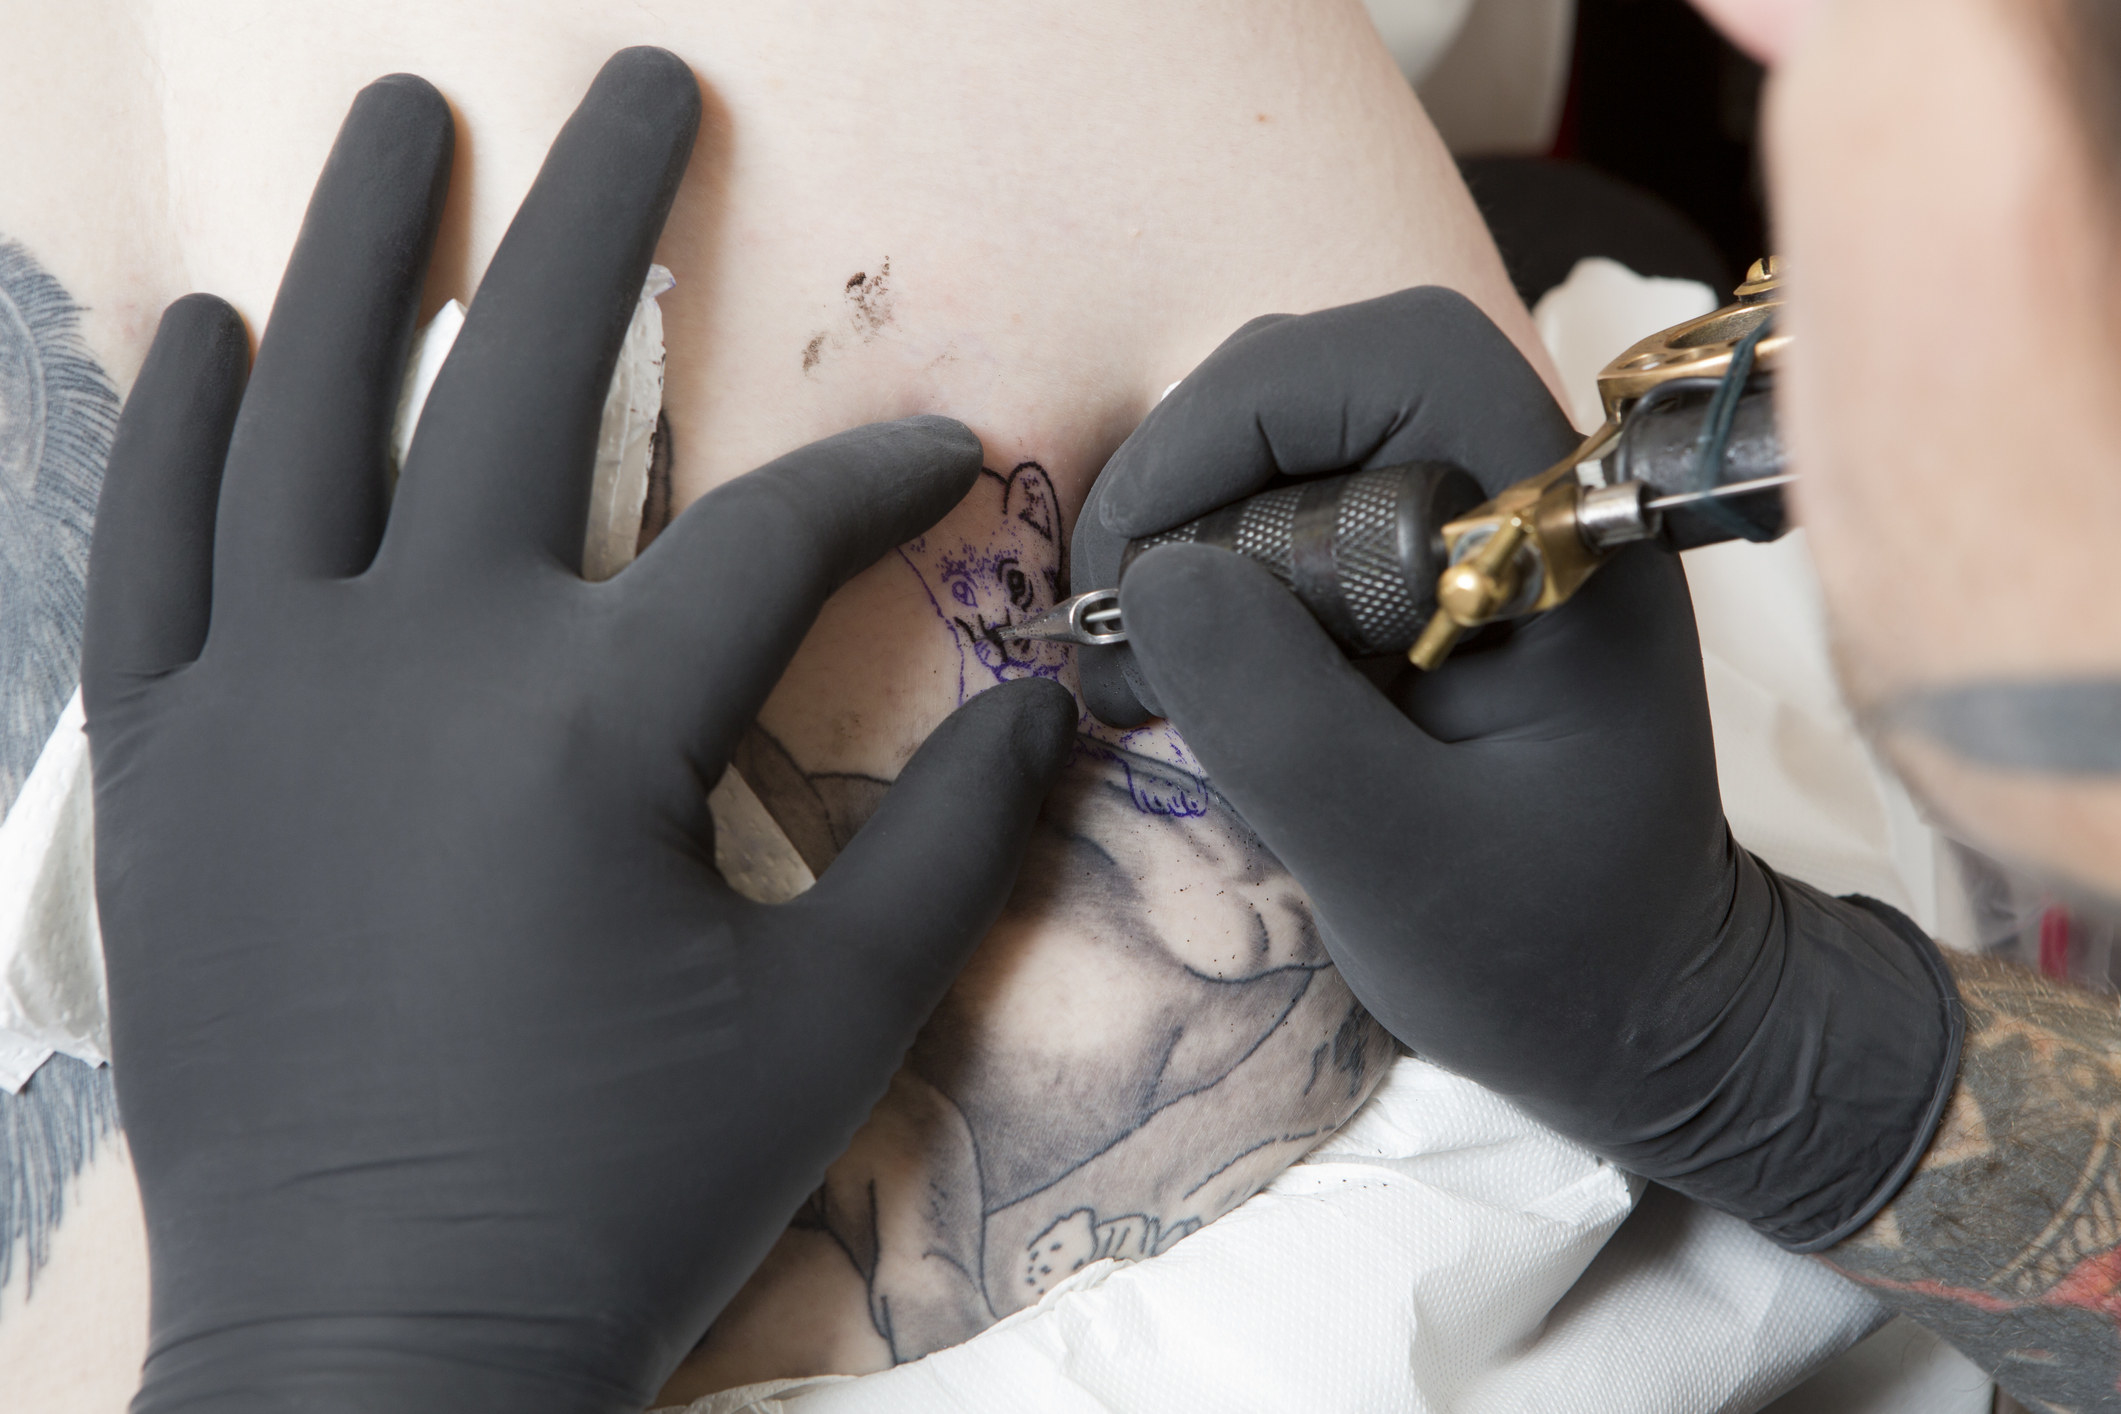 A stock image of a tattoo artist giving someone a tattoo